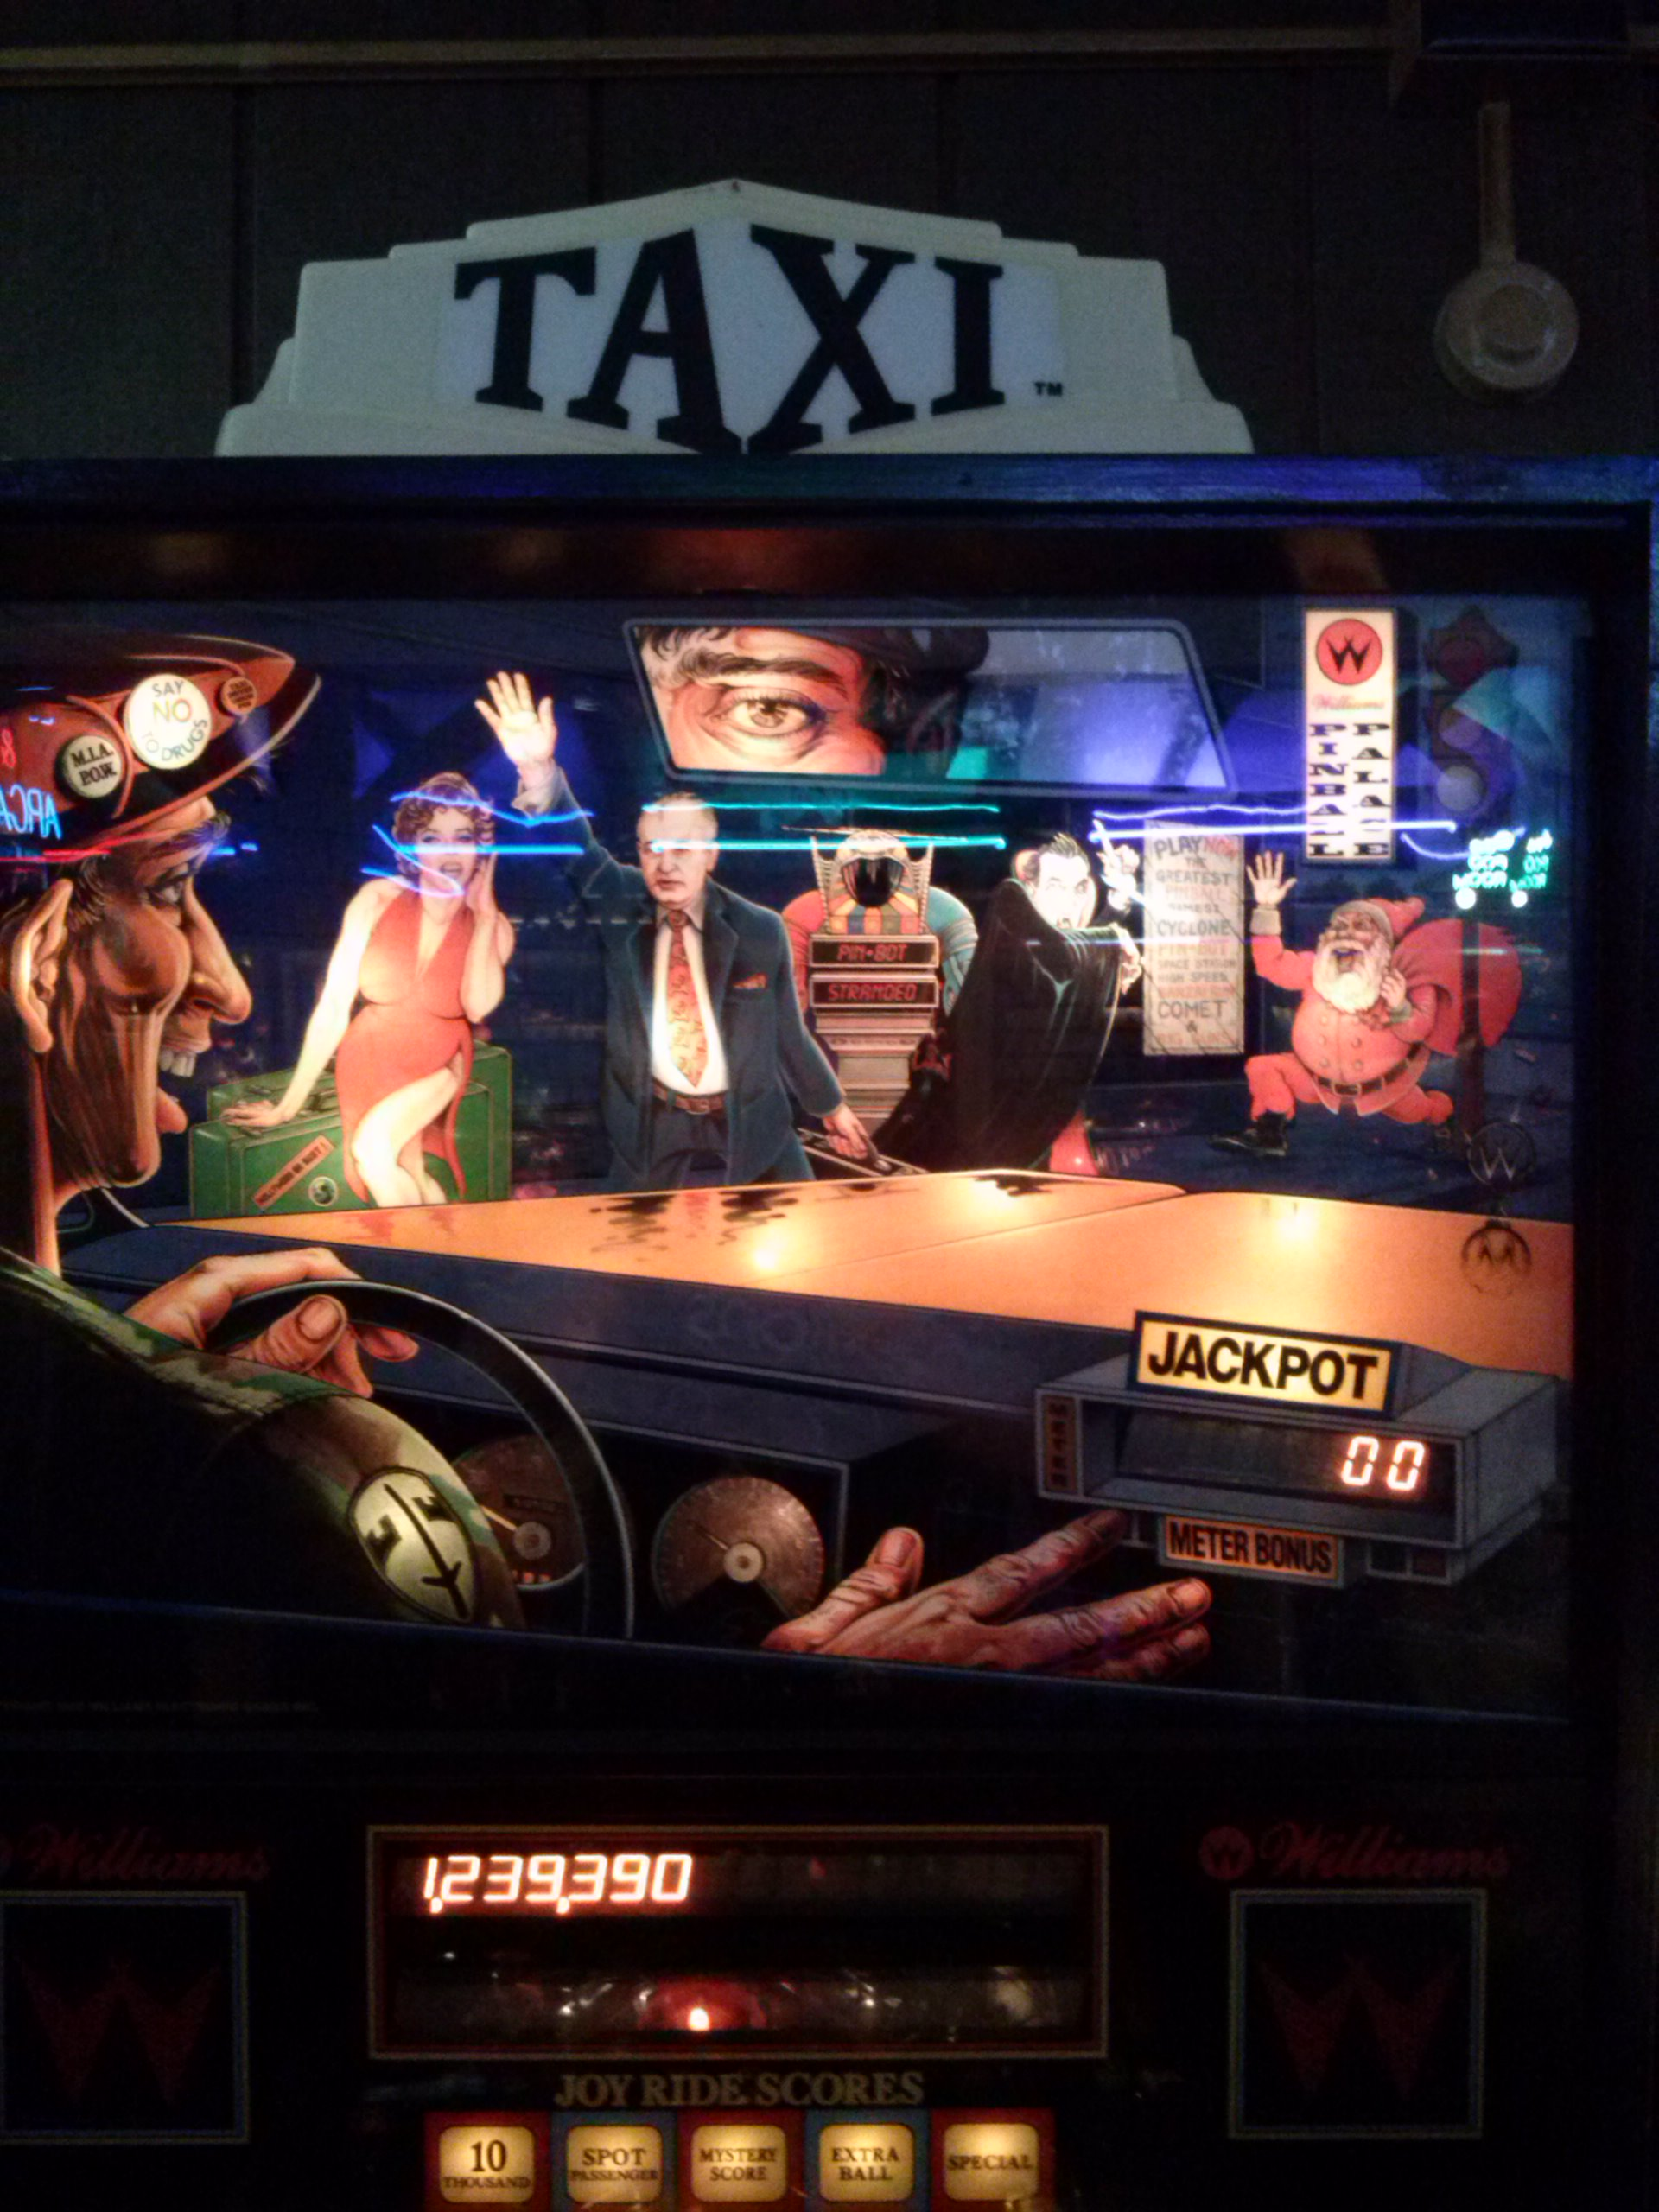 nester: Taxi (Pinball: 3 Balls) 1,239,390 points on 2014-05-20 14:45:05